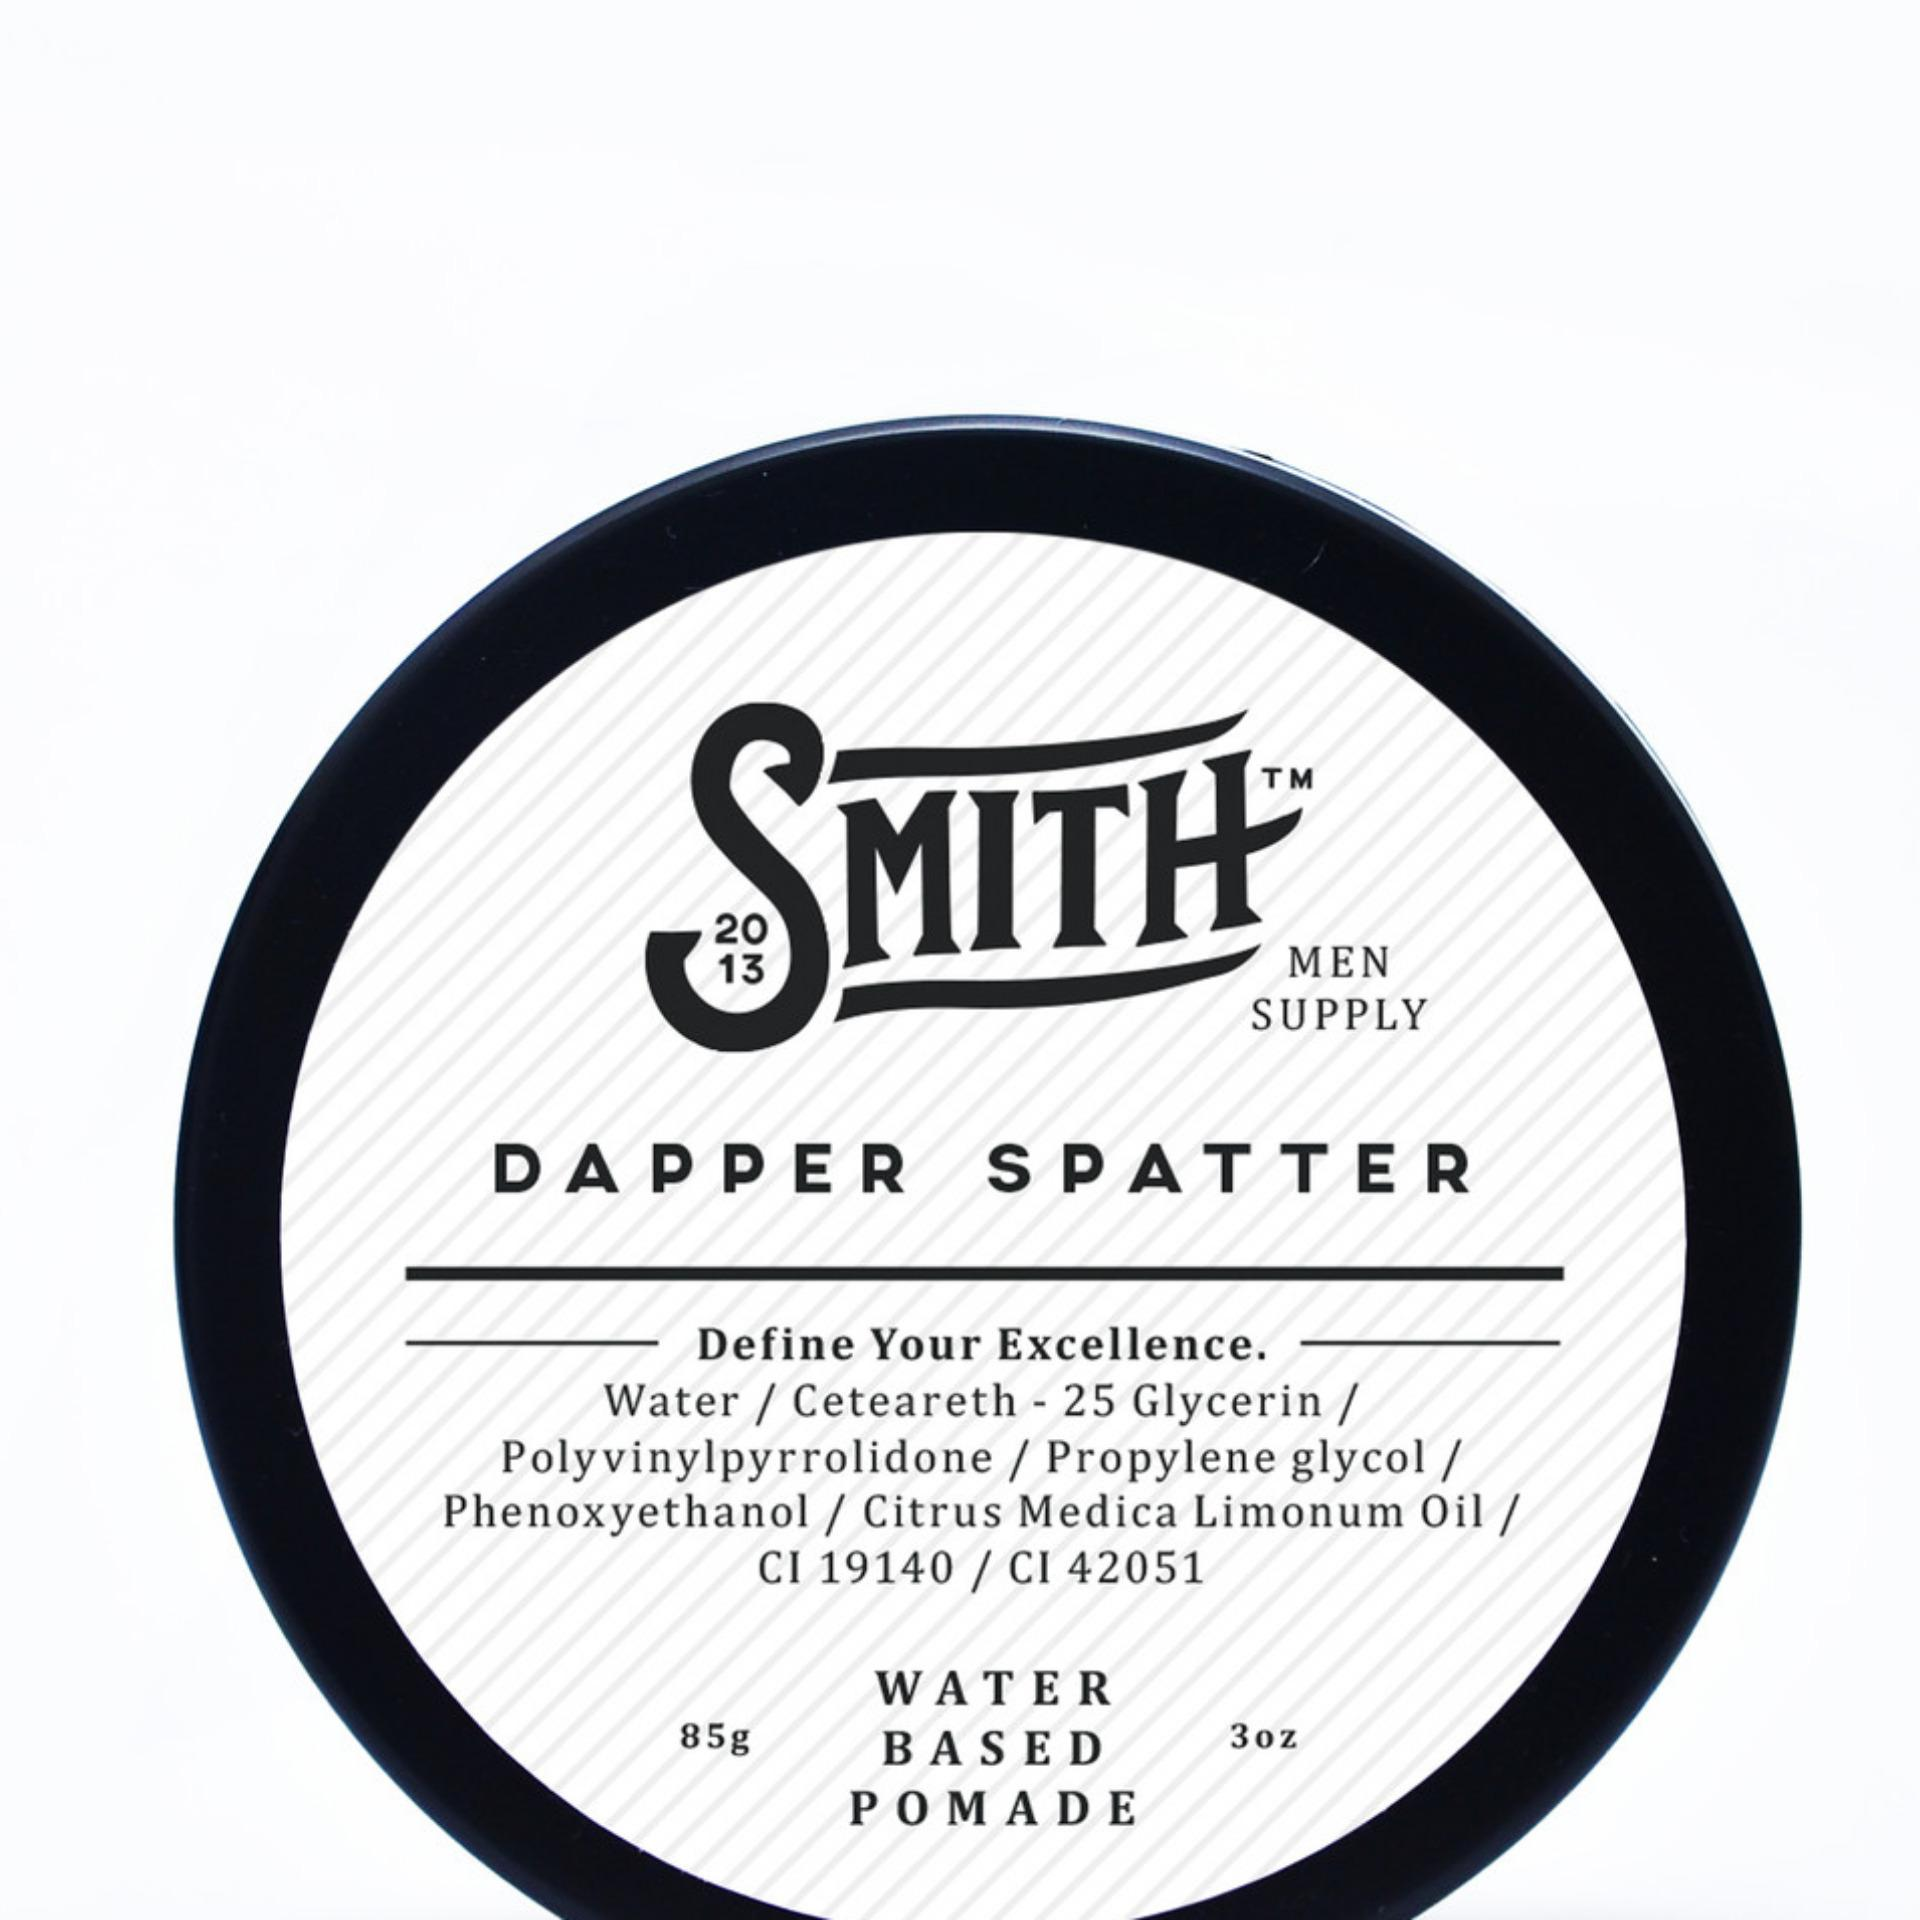 Harga Pomade Smith Dapper Spatter Waterbased 3 Oz Yang Bagus